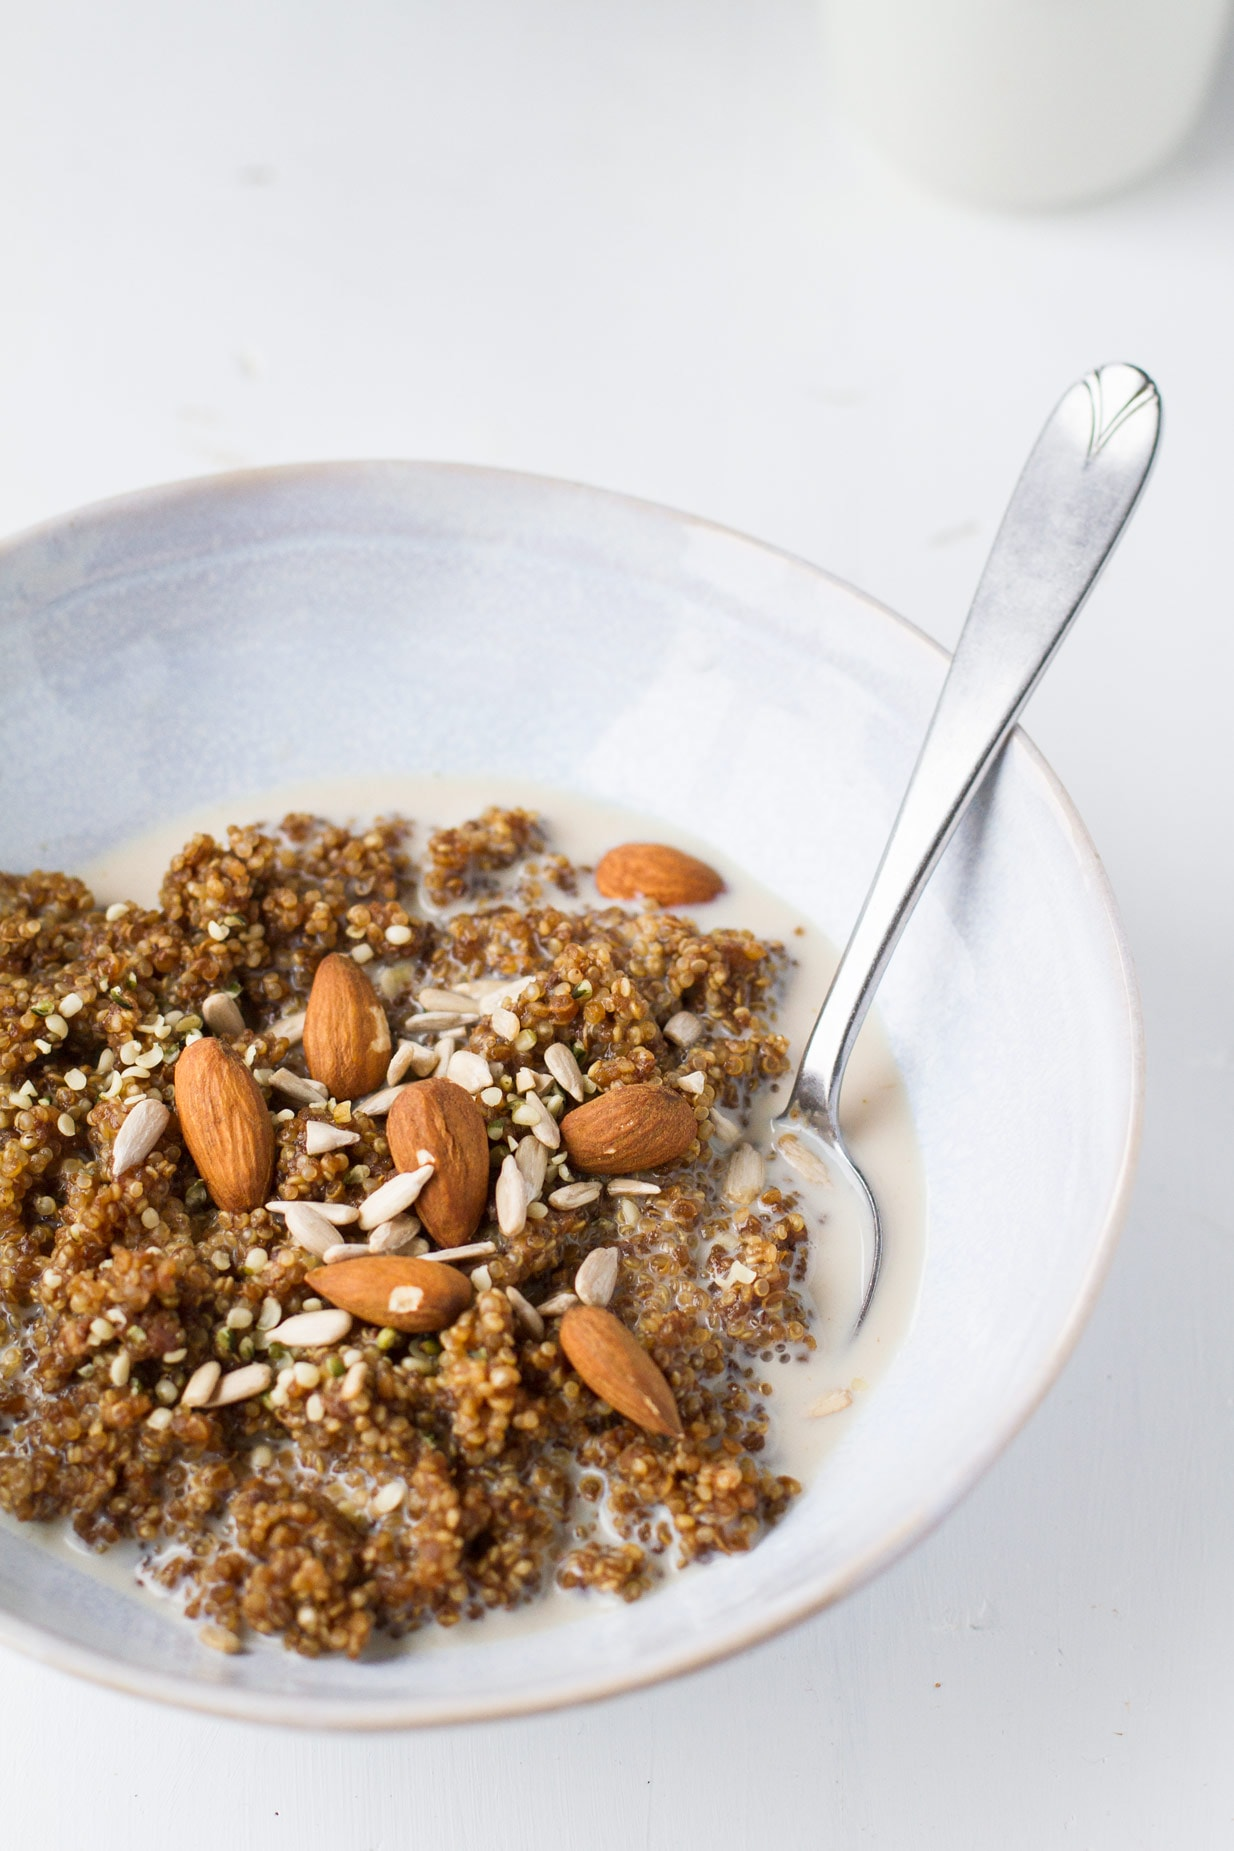 A blue bowl with breakfast quinoa and milk, topped with sunflower seeds and almonds.